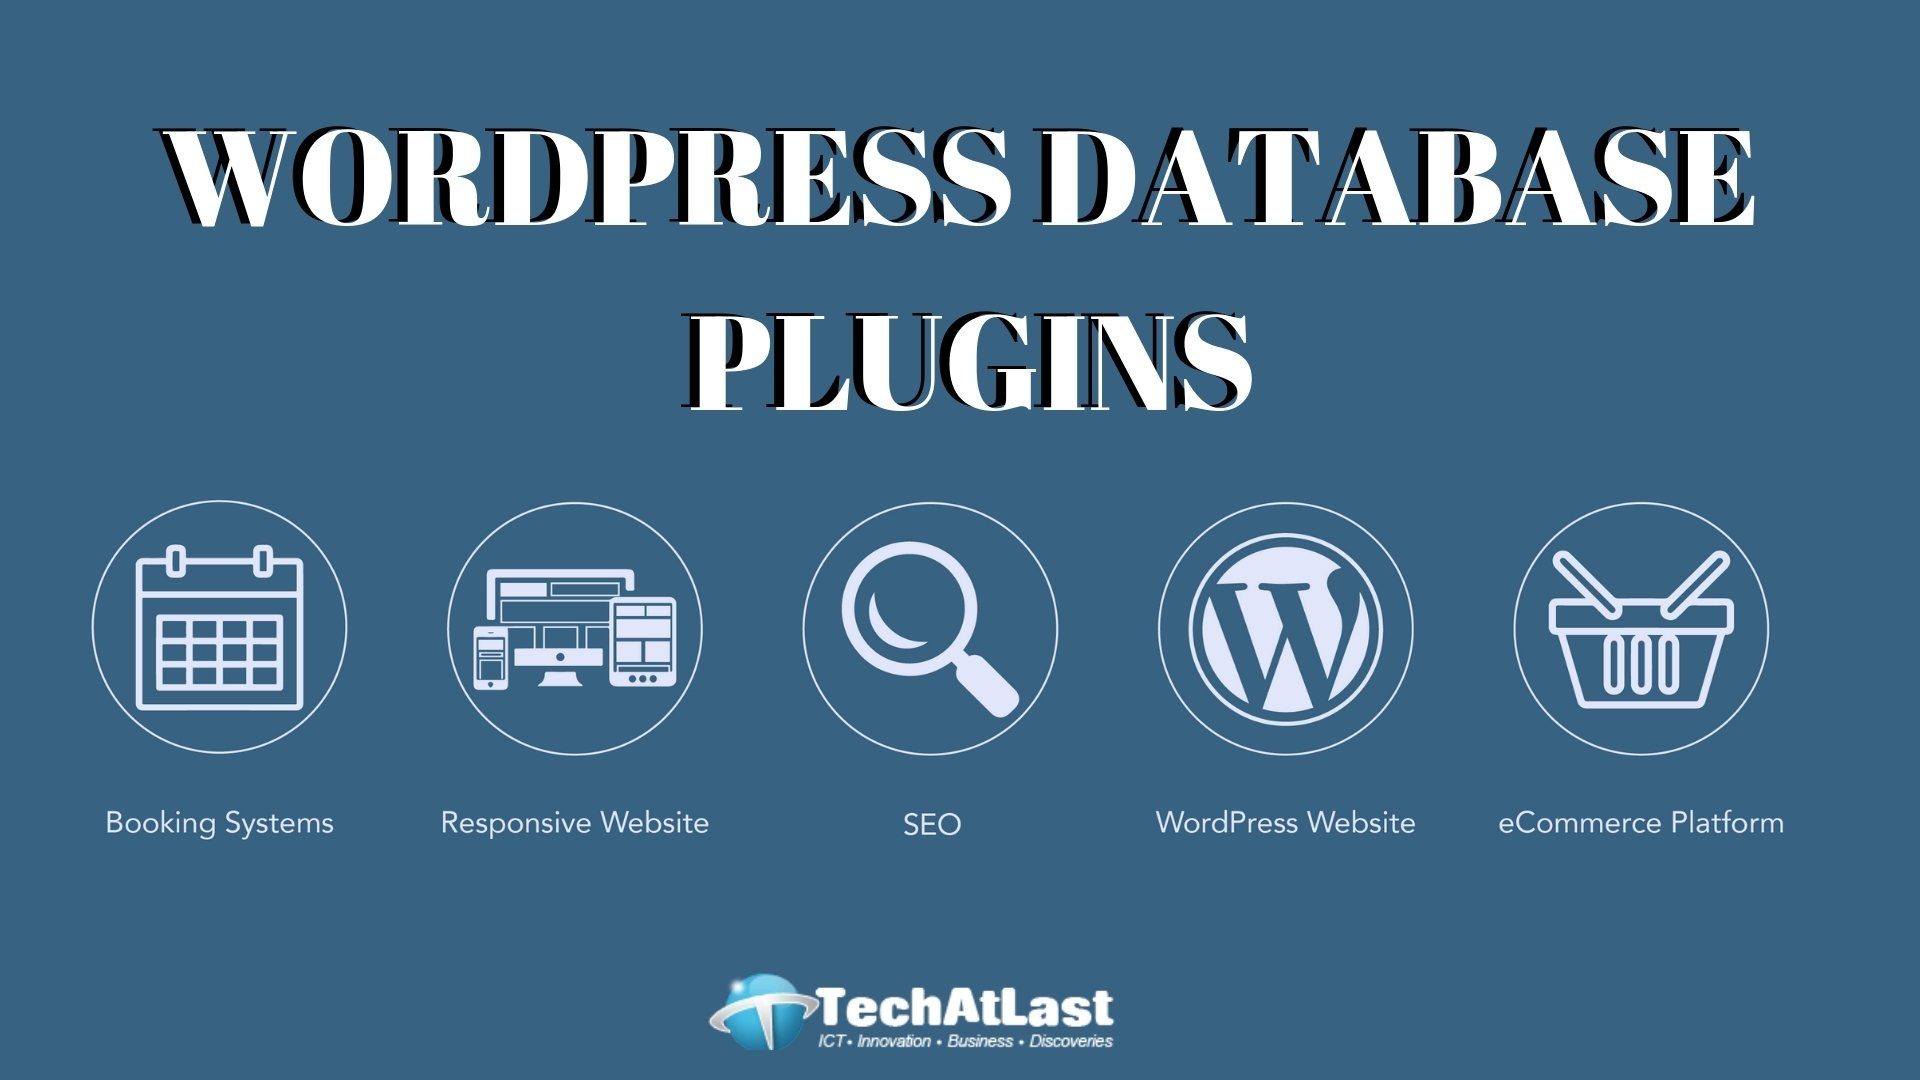 13 Best WordPress Database Plugins With Feature-Rich Functionalities - TechAtLast